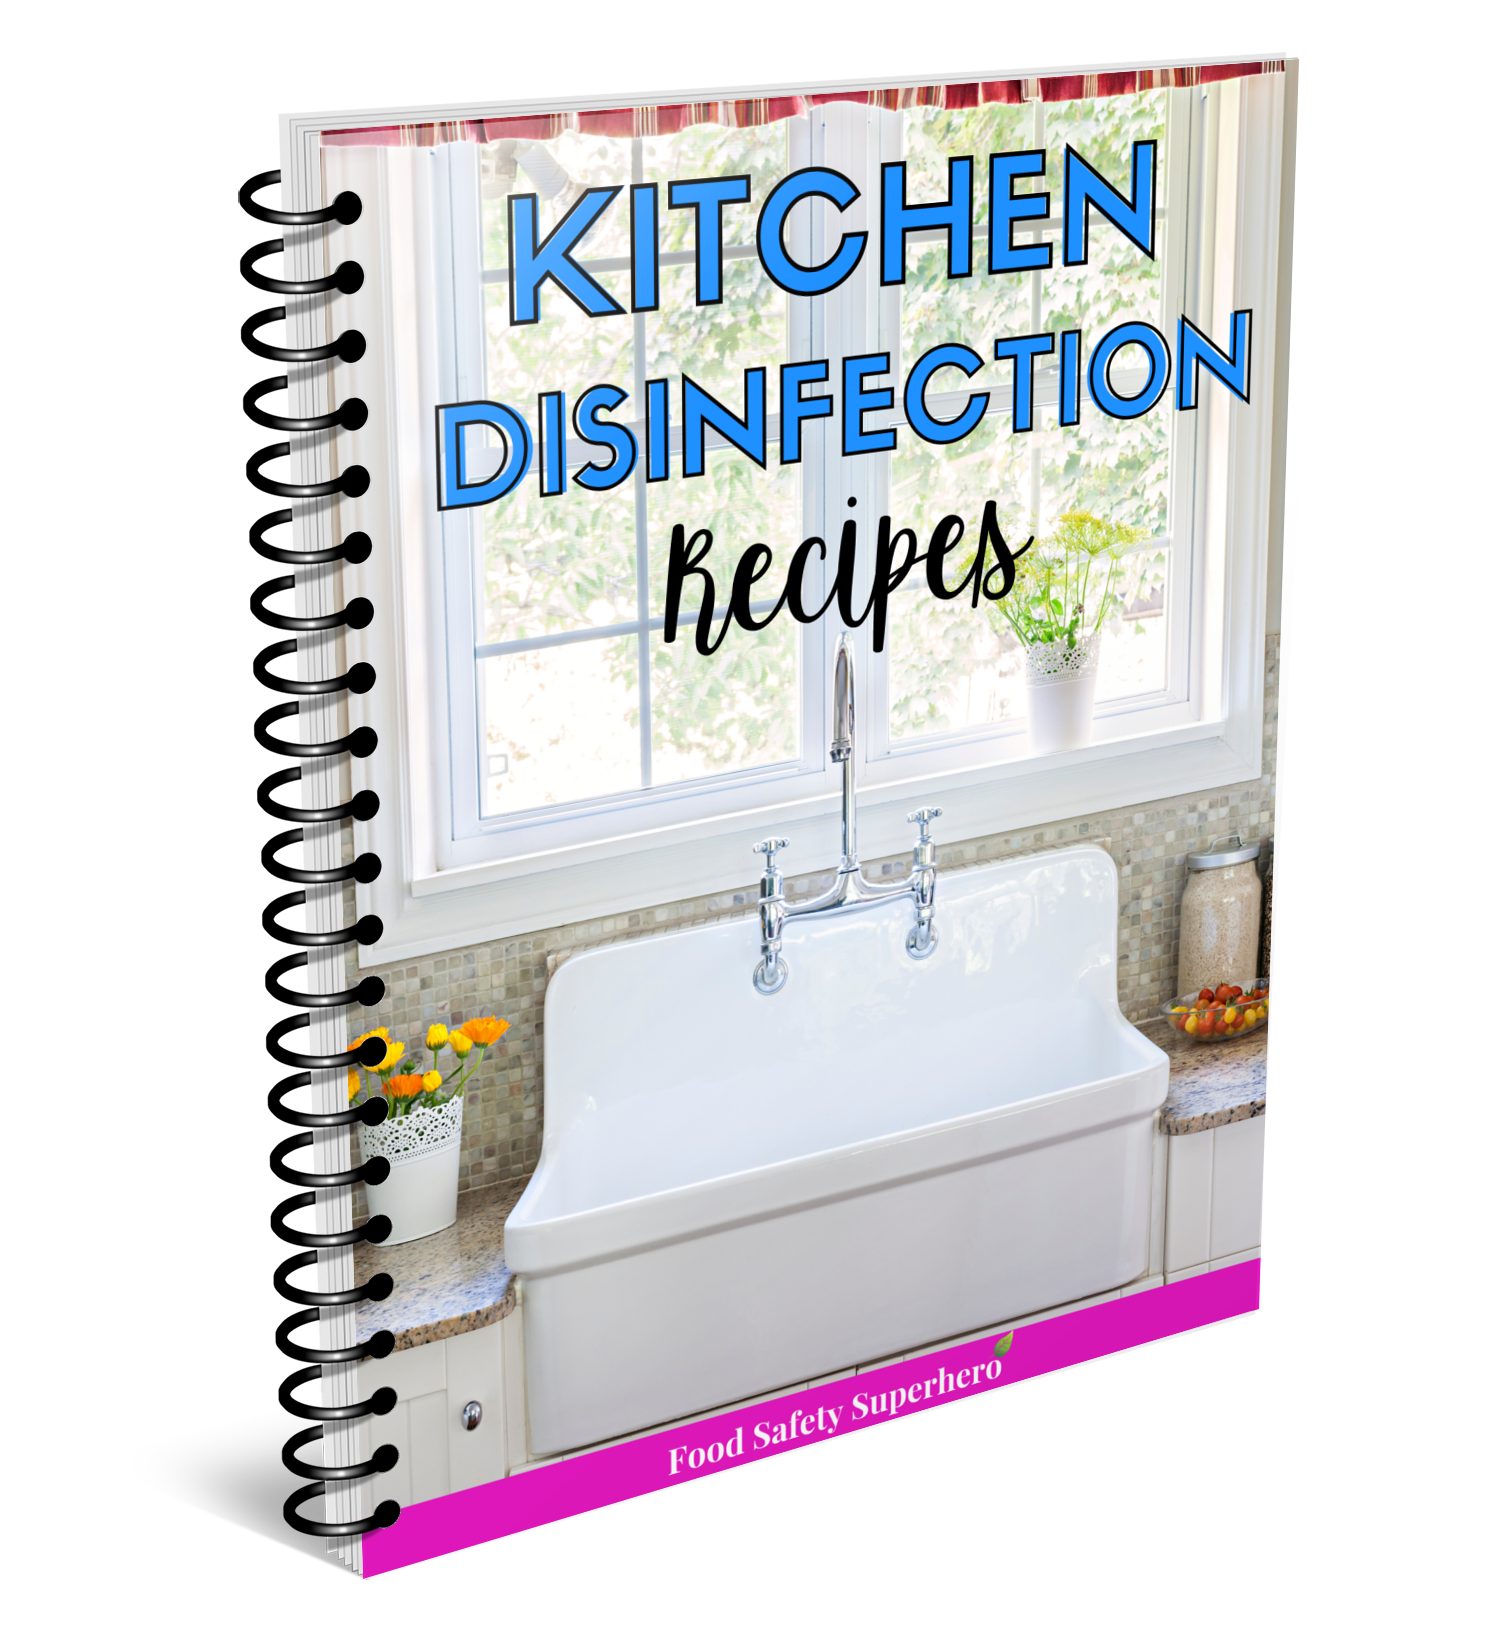 kitchen disinfection recipe book